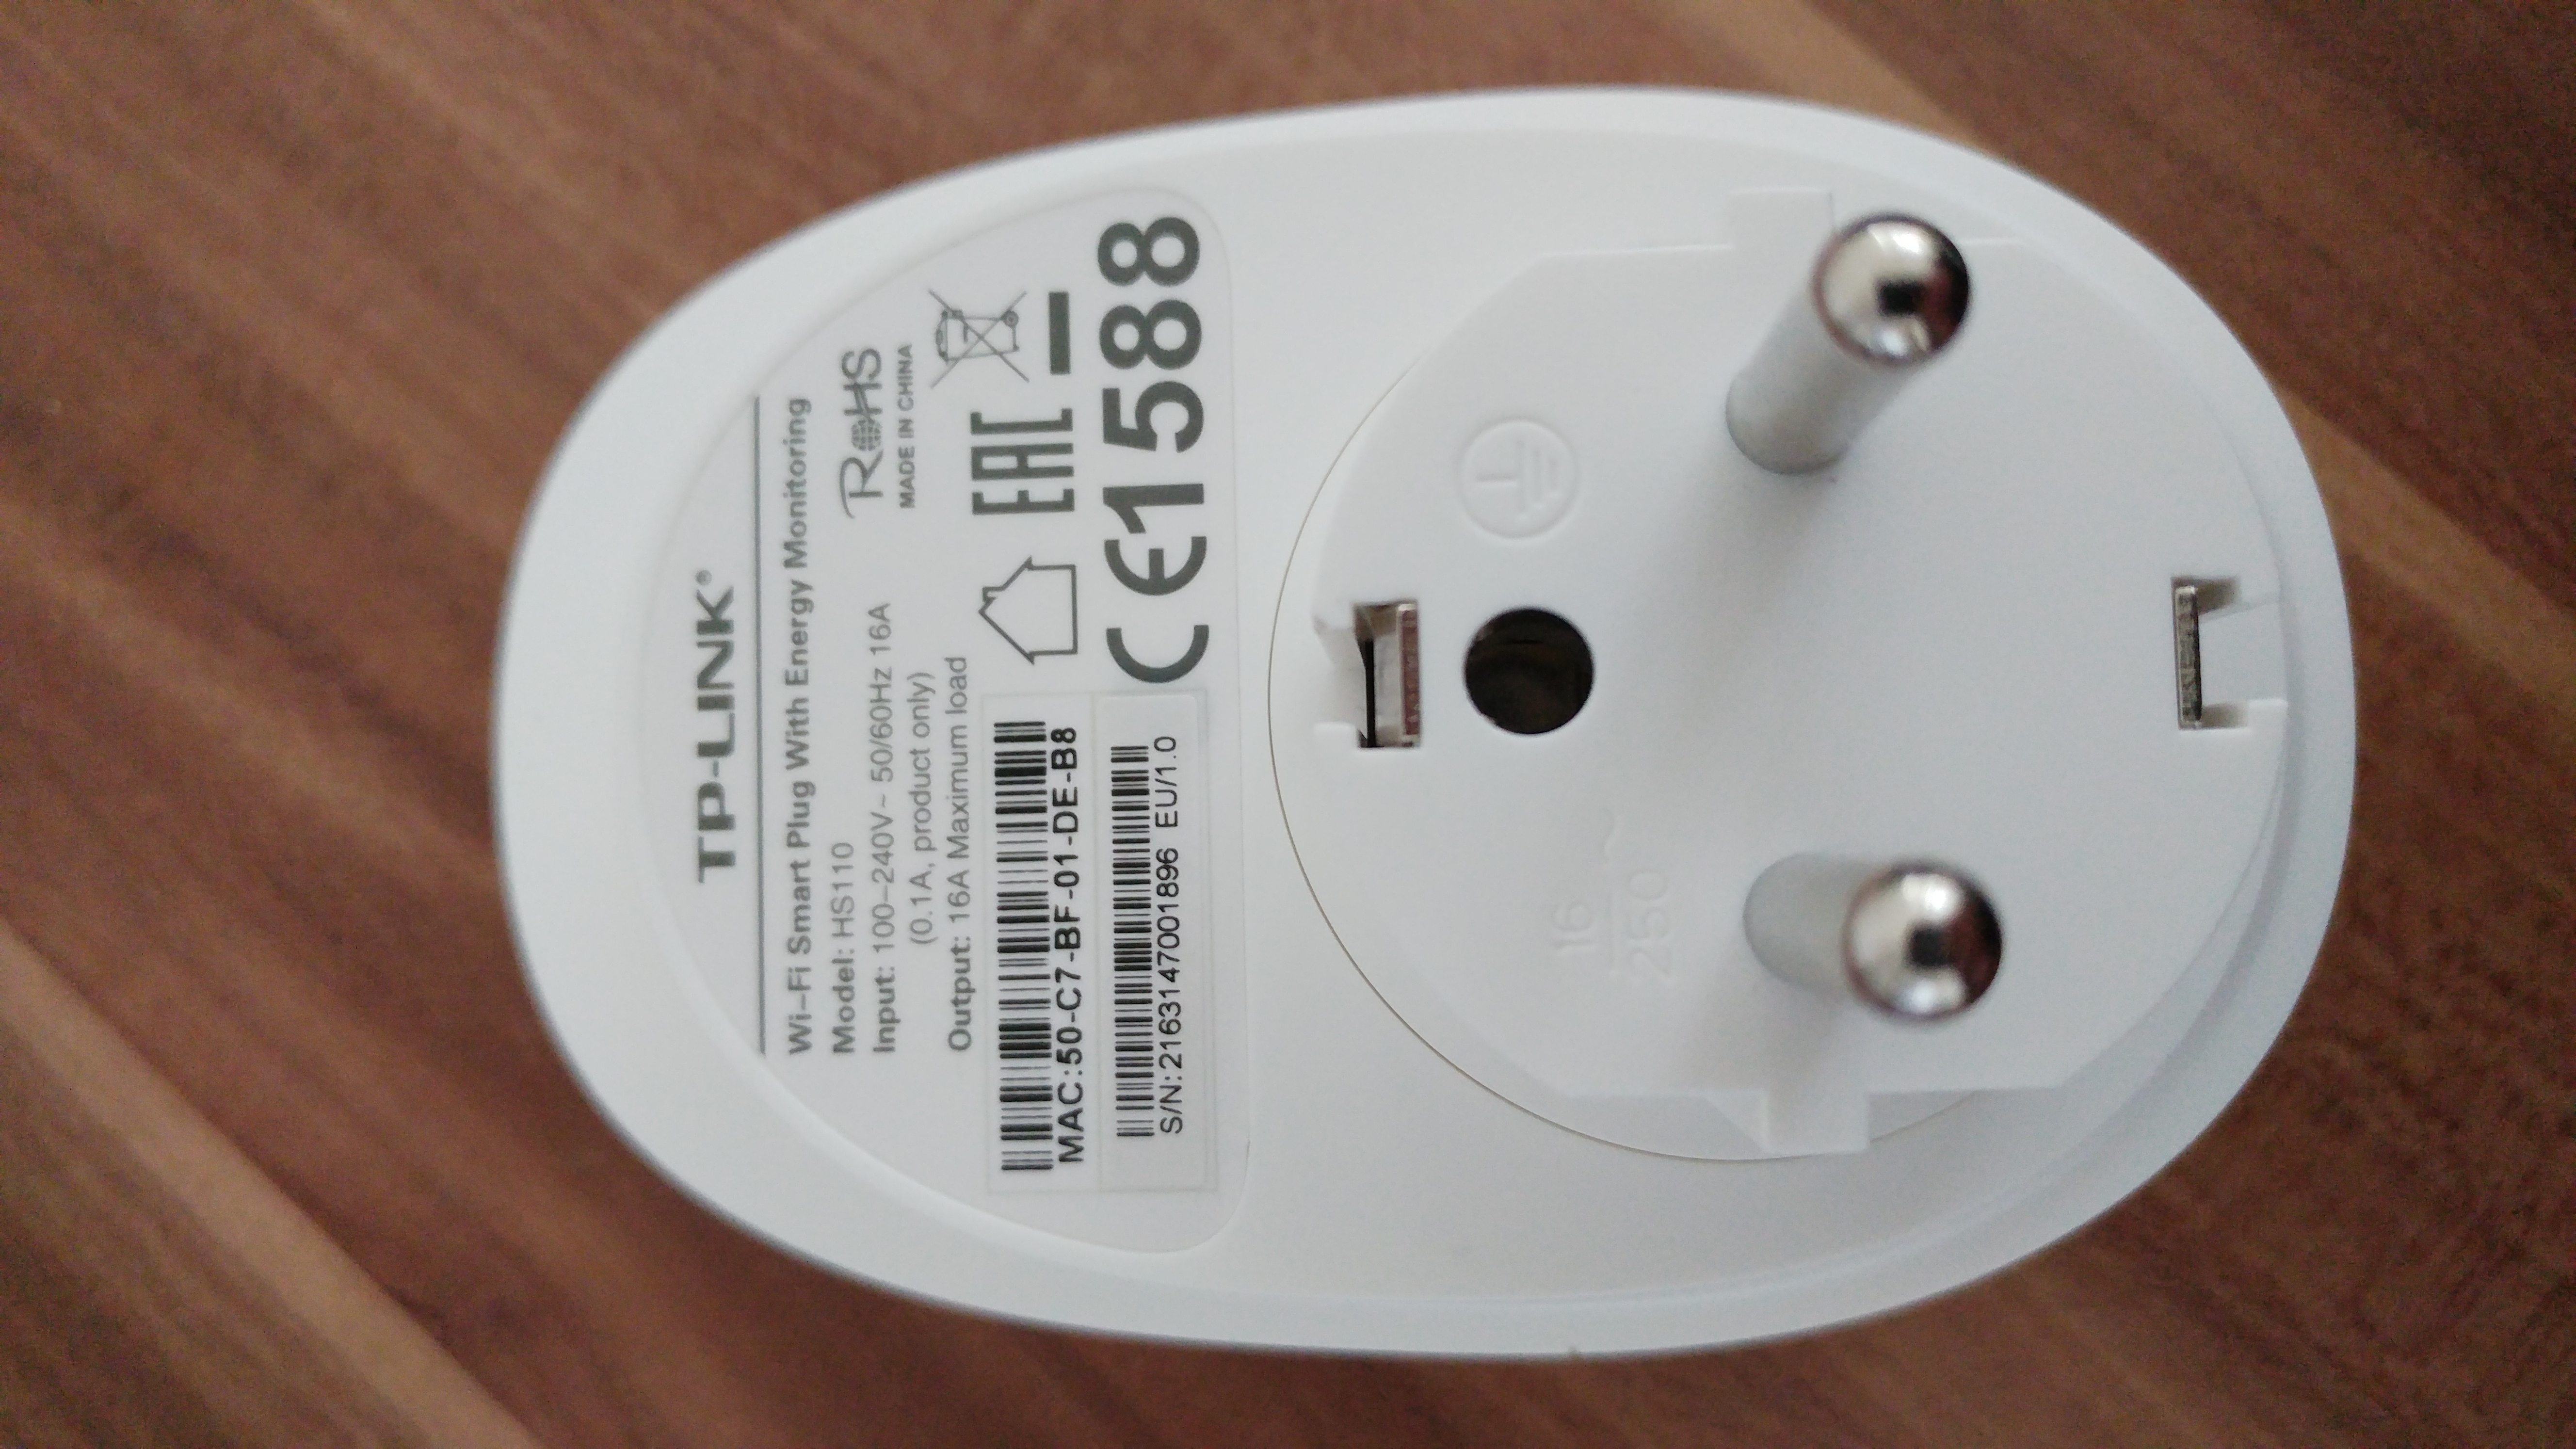 The HS-110 Smart Plug aka Projekt Kasa - Cureblog